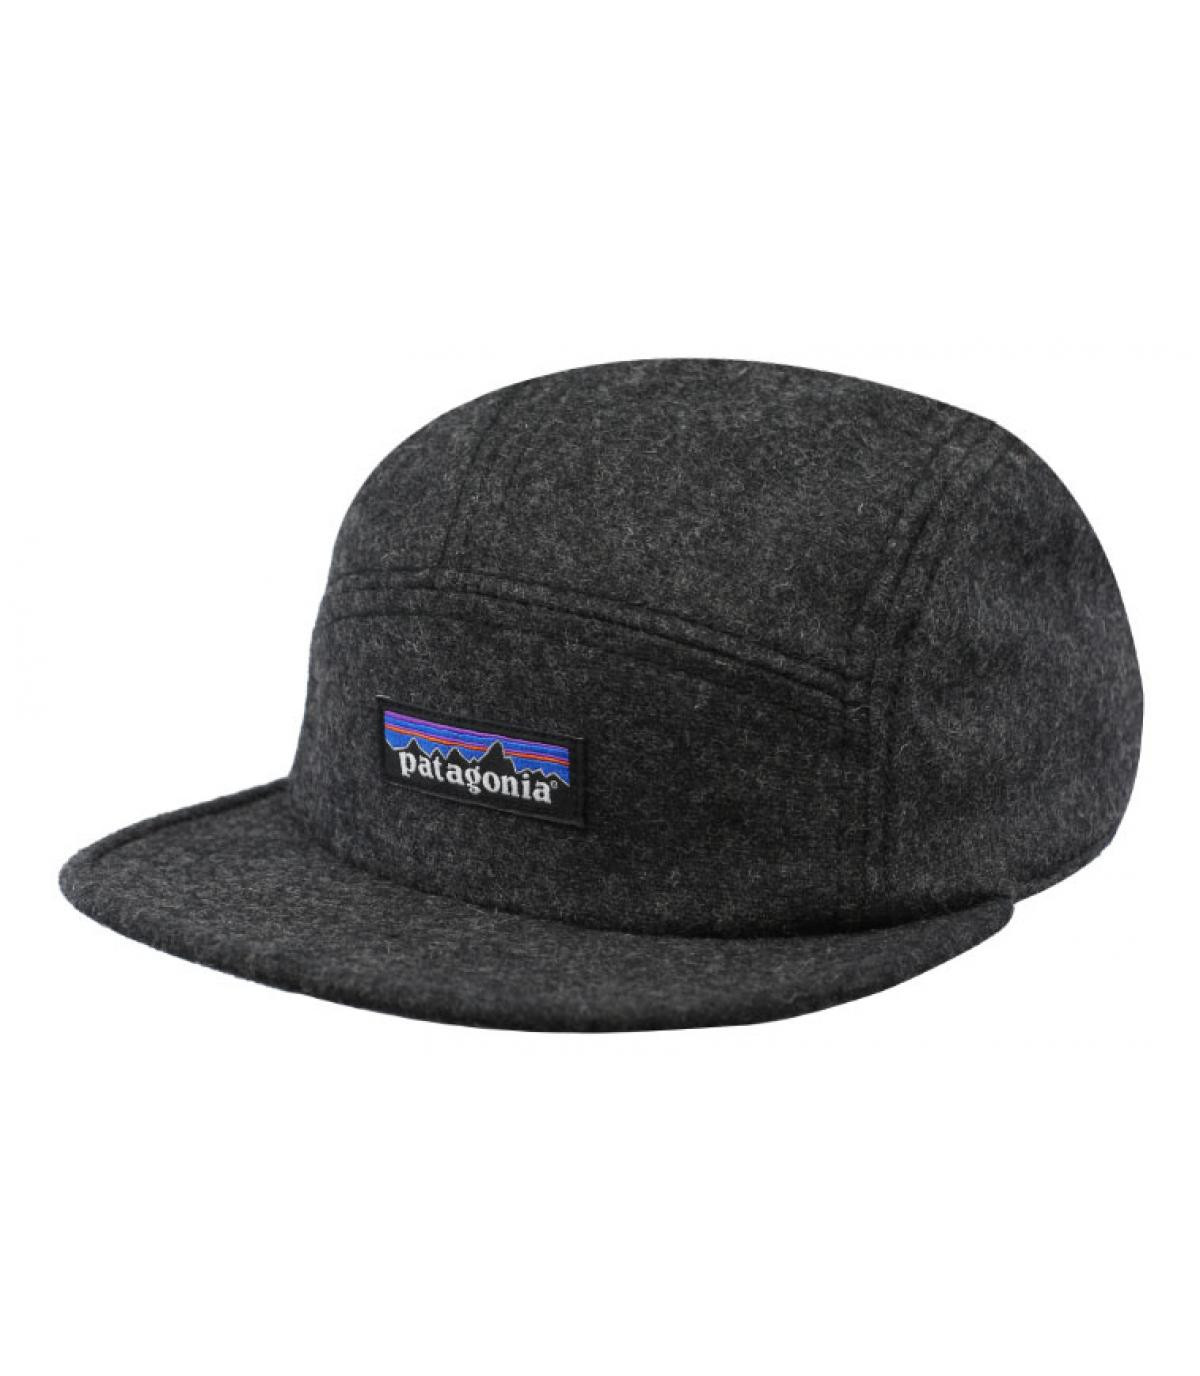 f401cd30 grey 5 panel cap Patagonia - Recycled Wool Cap forge grey by ...